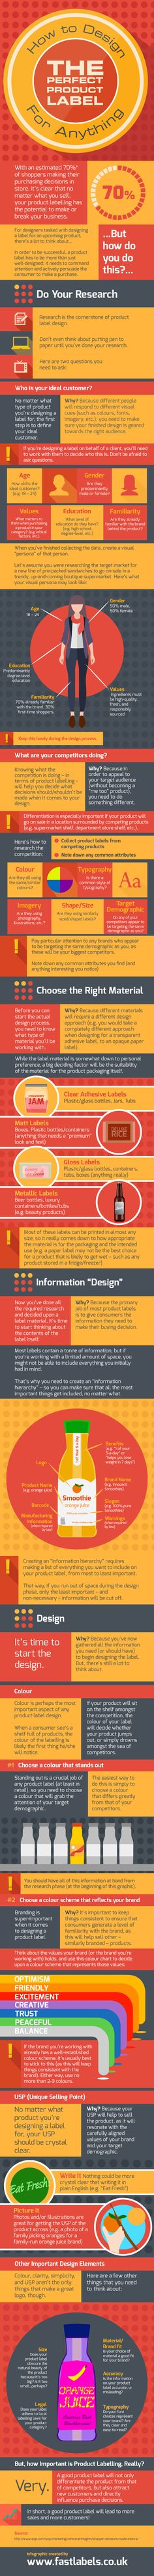 The Simple Guide to Designing an Effective Product Label [Infographic] - Print Magazine